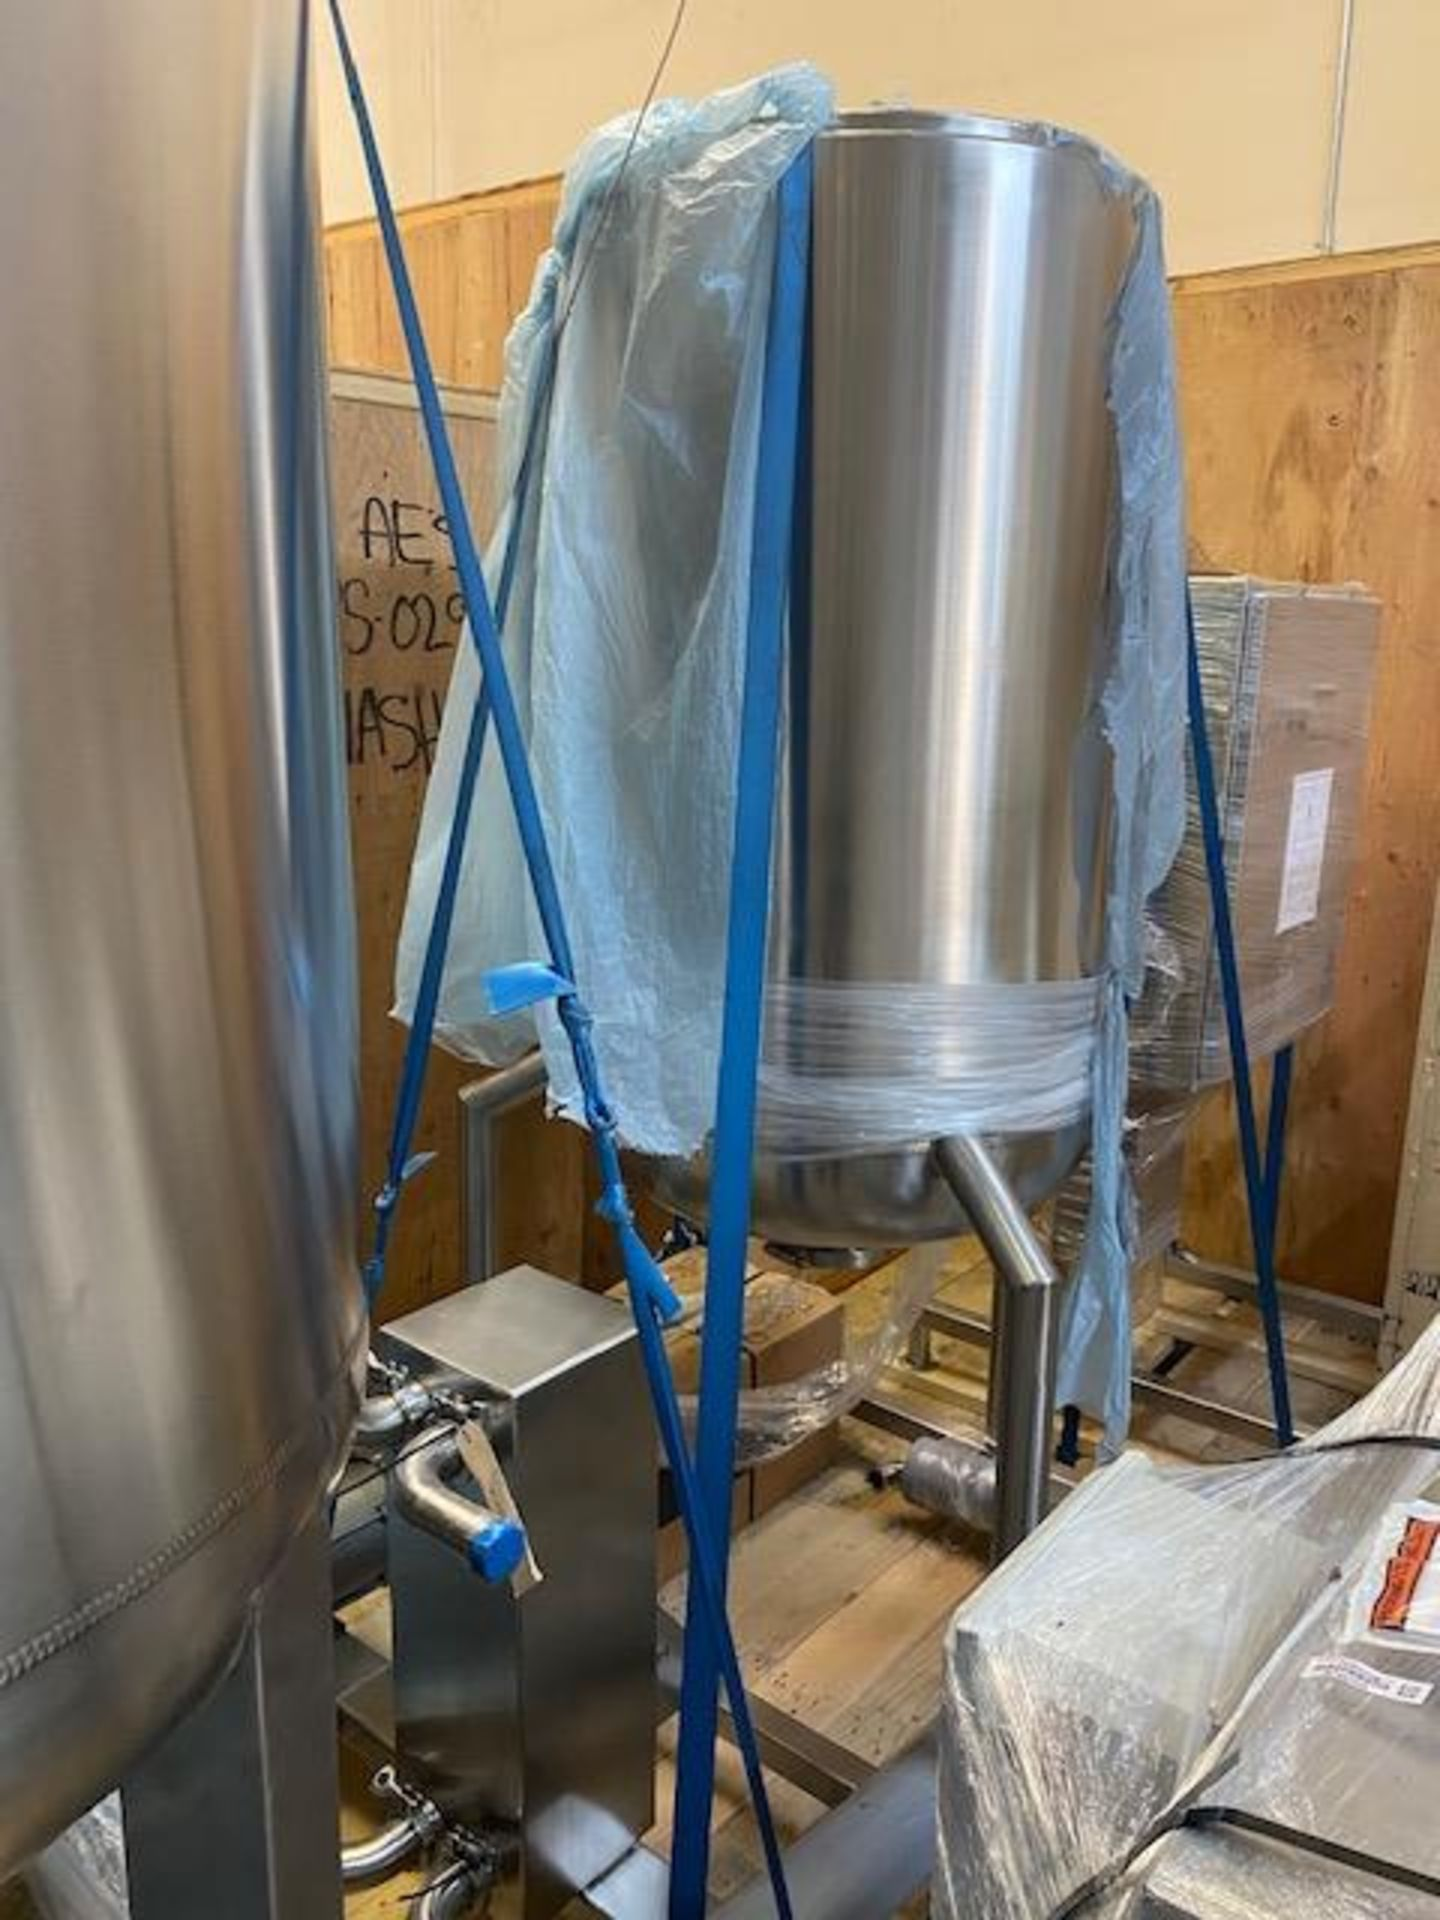 UNUSED/Still-In-Crate-Pinnacle Stainless Complete Extraction Bundle. LISTING HAS FULL INVENTORY. - Image 10 of 14